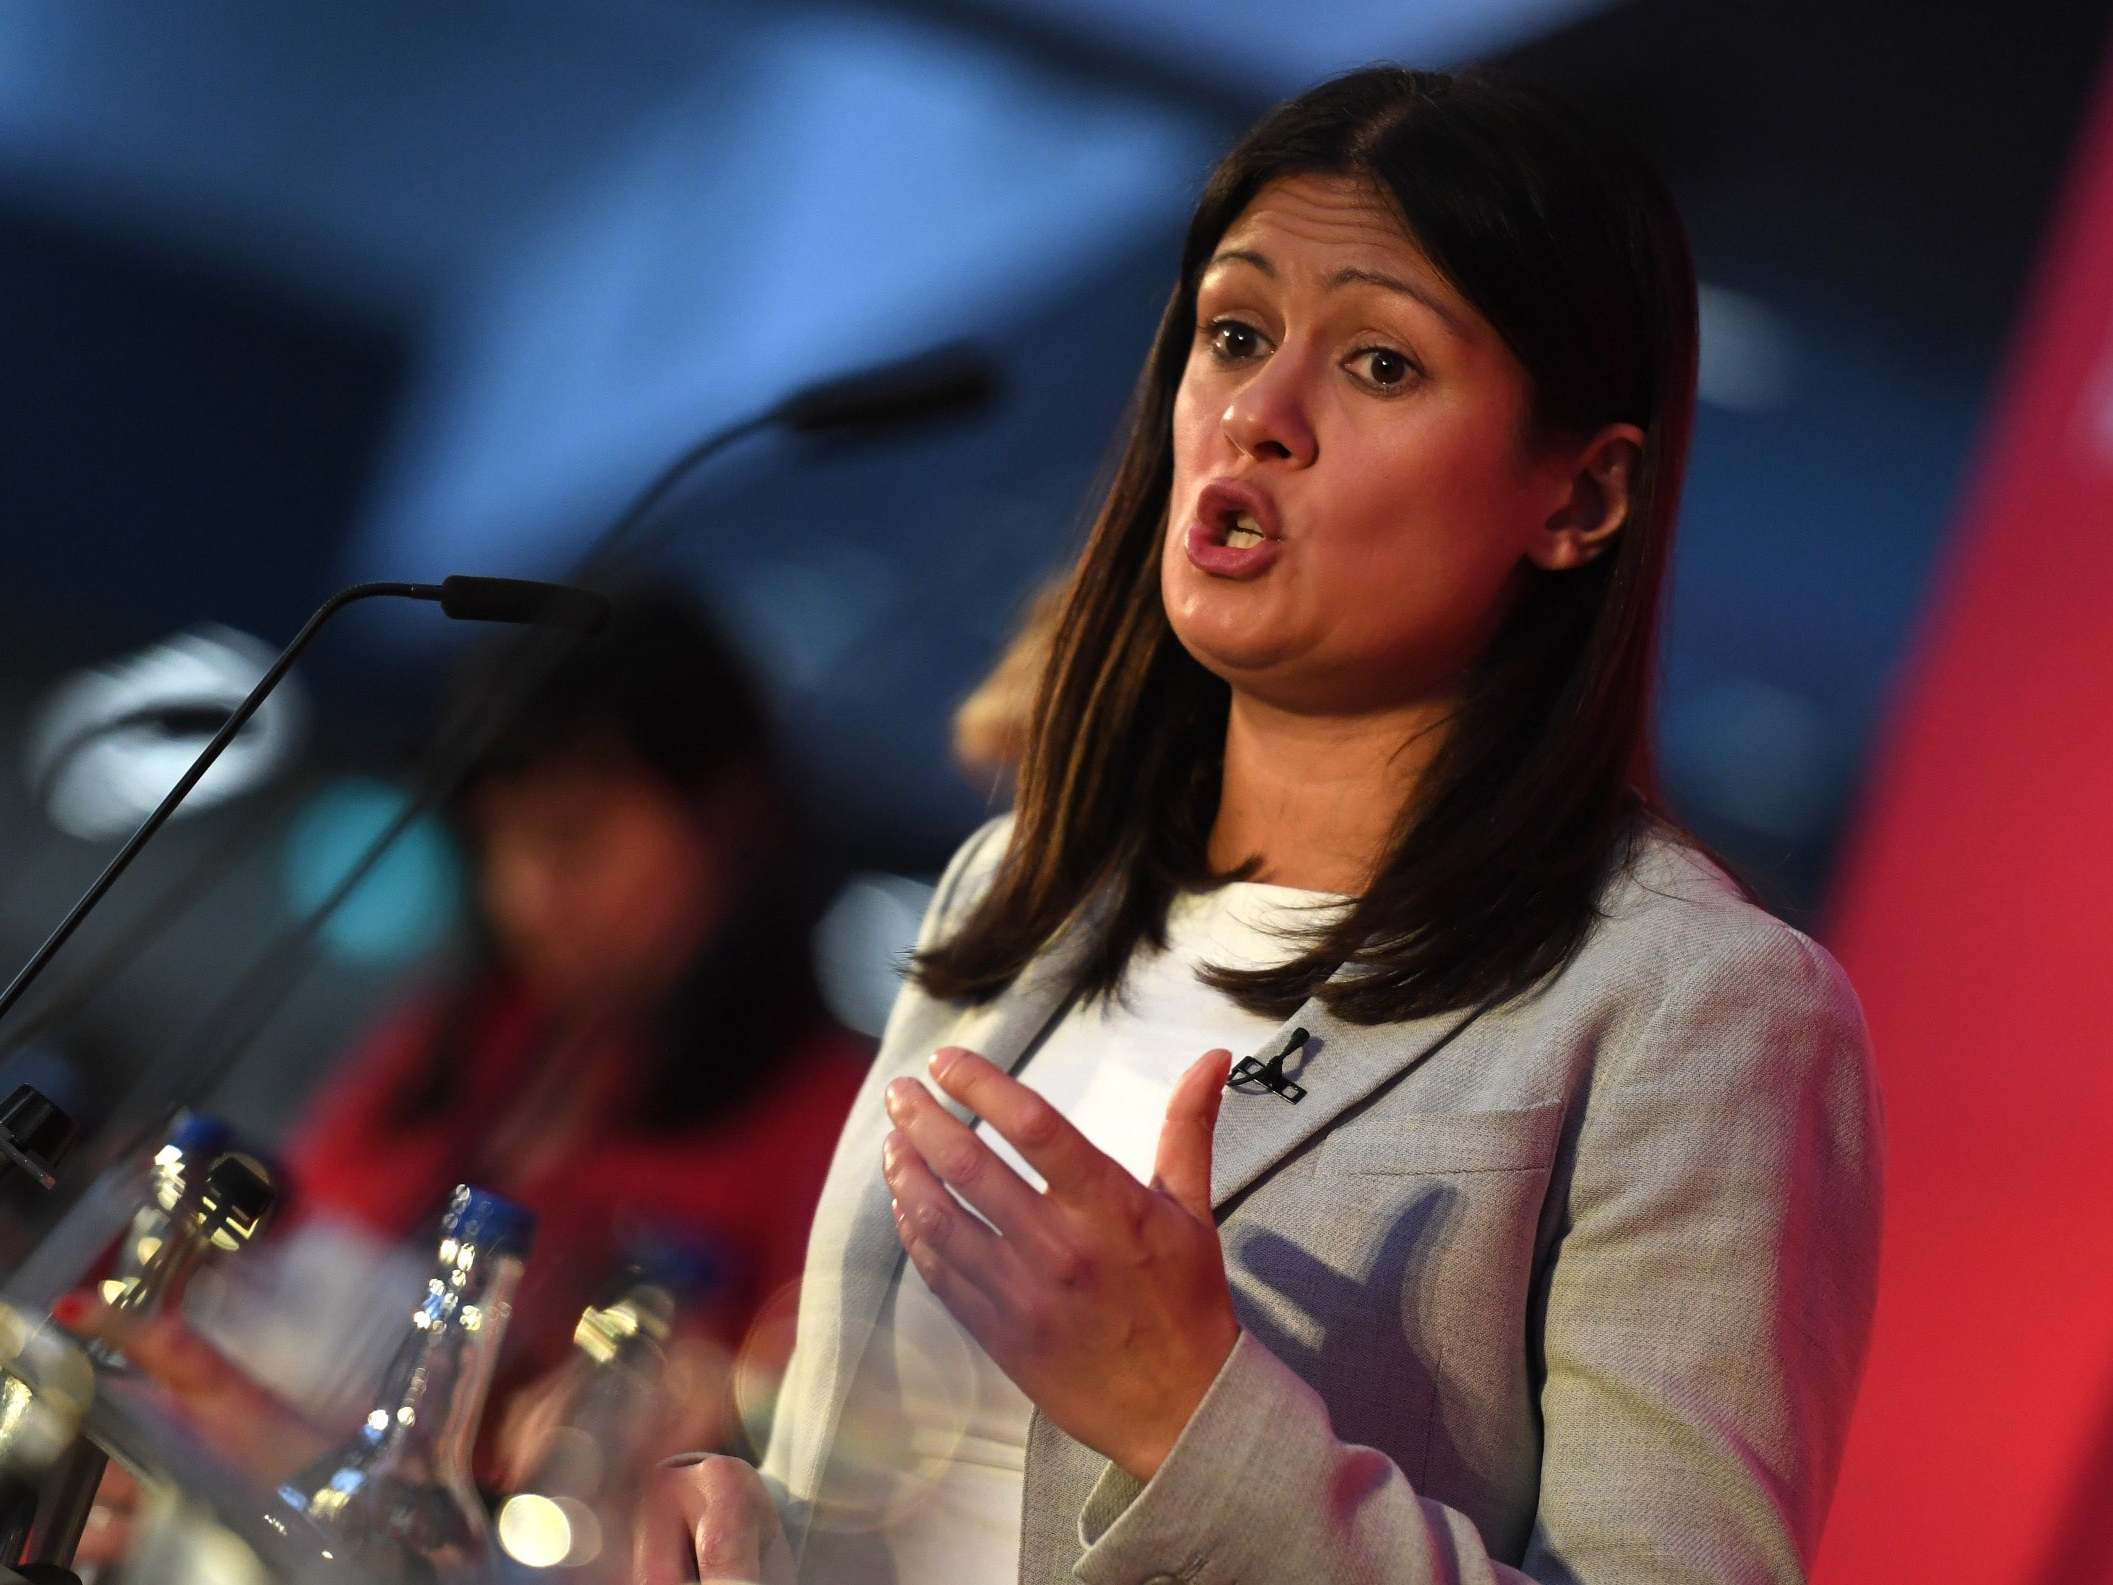 Labour must stop treating its voters as 'irrational or racist' if party wants to regain power, Lisa Nandy says